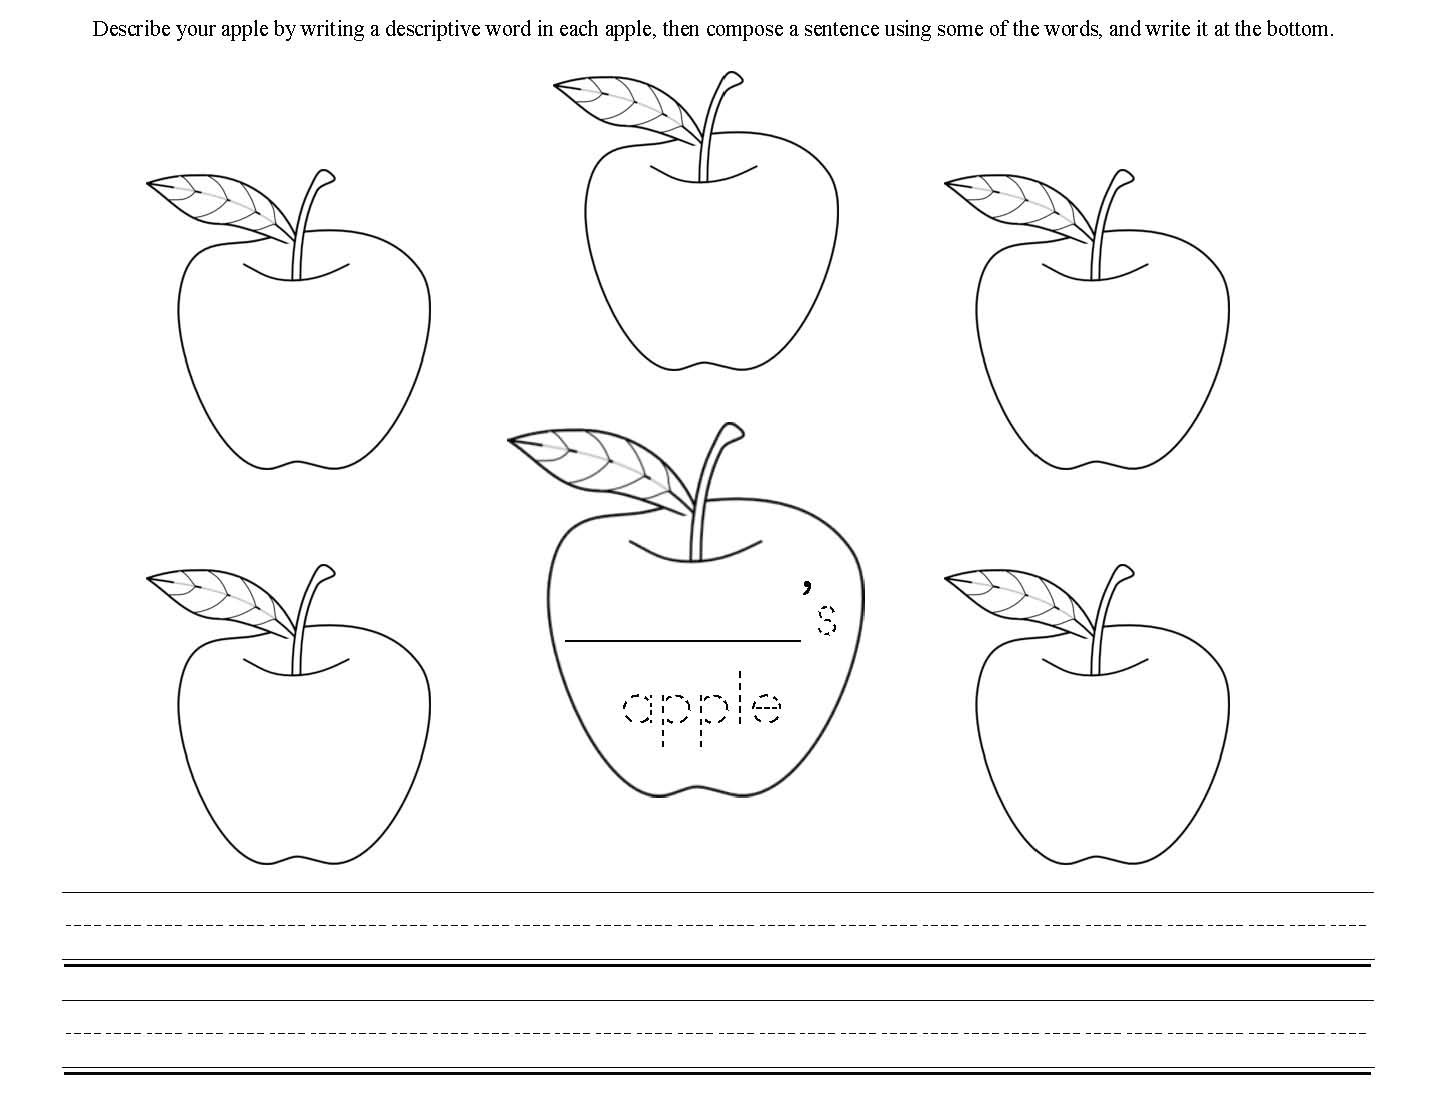 apple games, apple activities, apple lessons, comparing apples with pumpkins, apple venn diagram, venn diagrams, alphabet activities, alphabet games, apple games, apple centers, apple worksheets, apple table top lessons, adjective activities, apple writing prompts, describing apples activities, graphic organizers,apple poster, free posters for school,